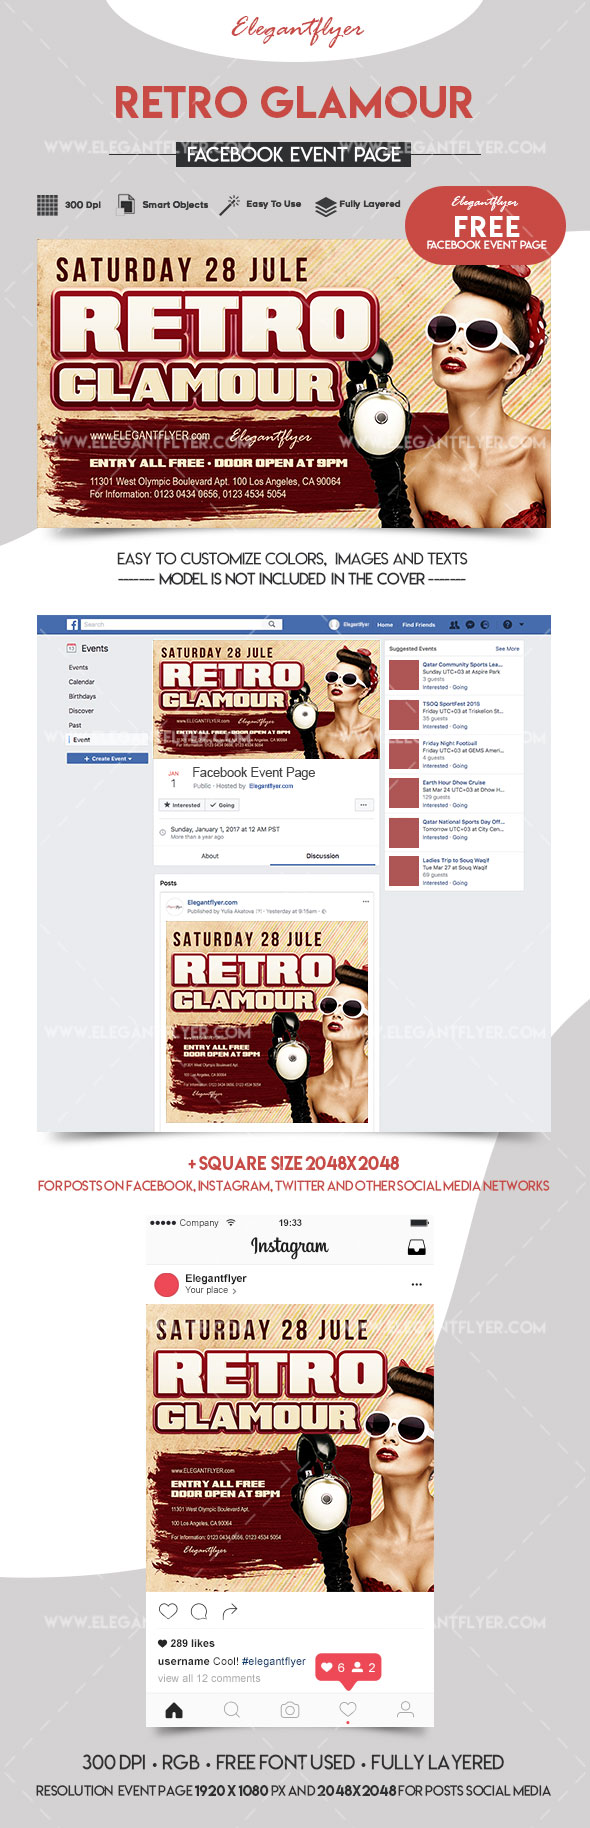 Retro Glamour – Free Facebook Event Page